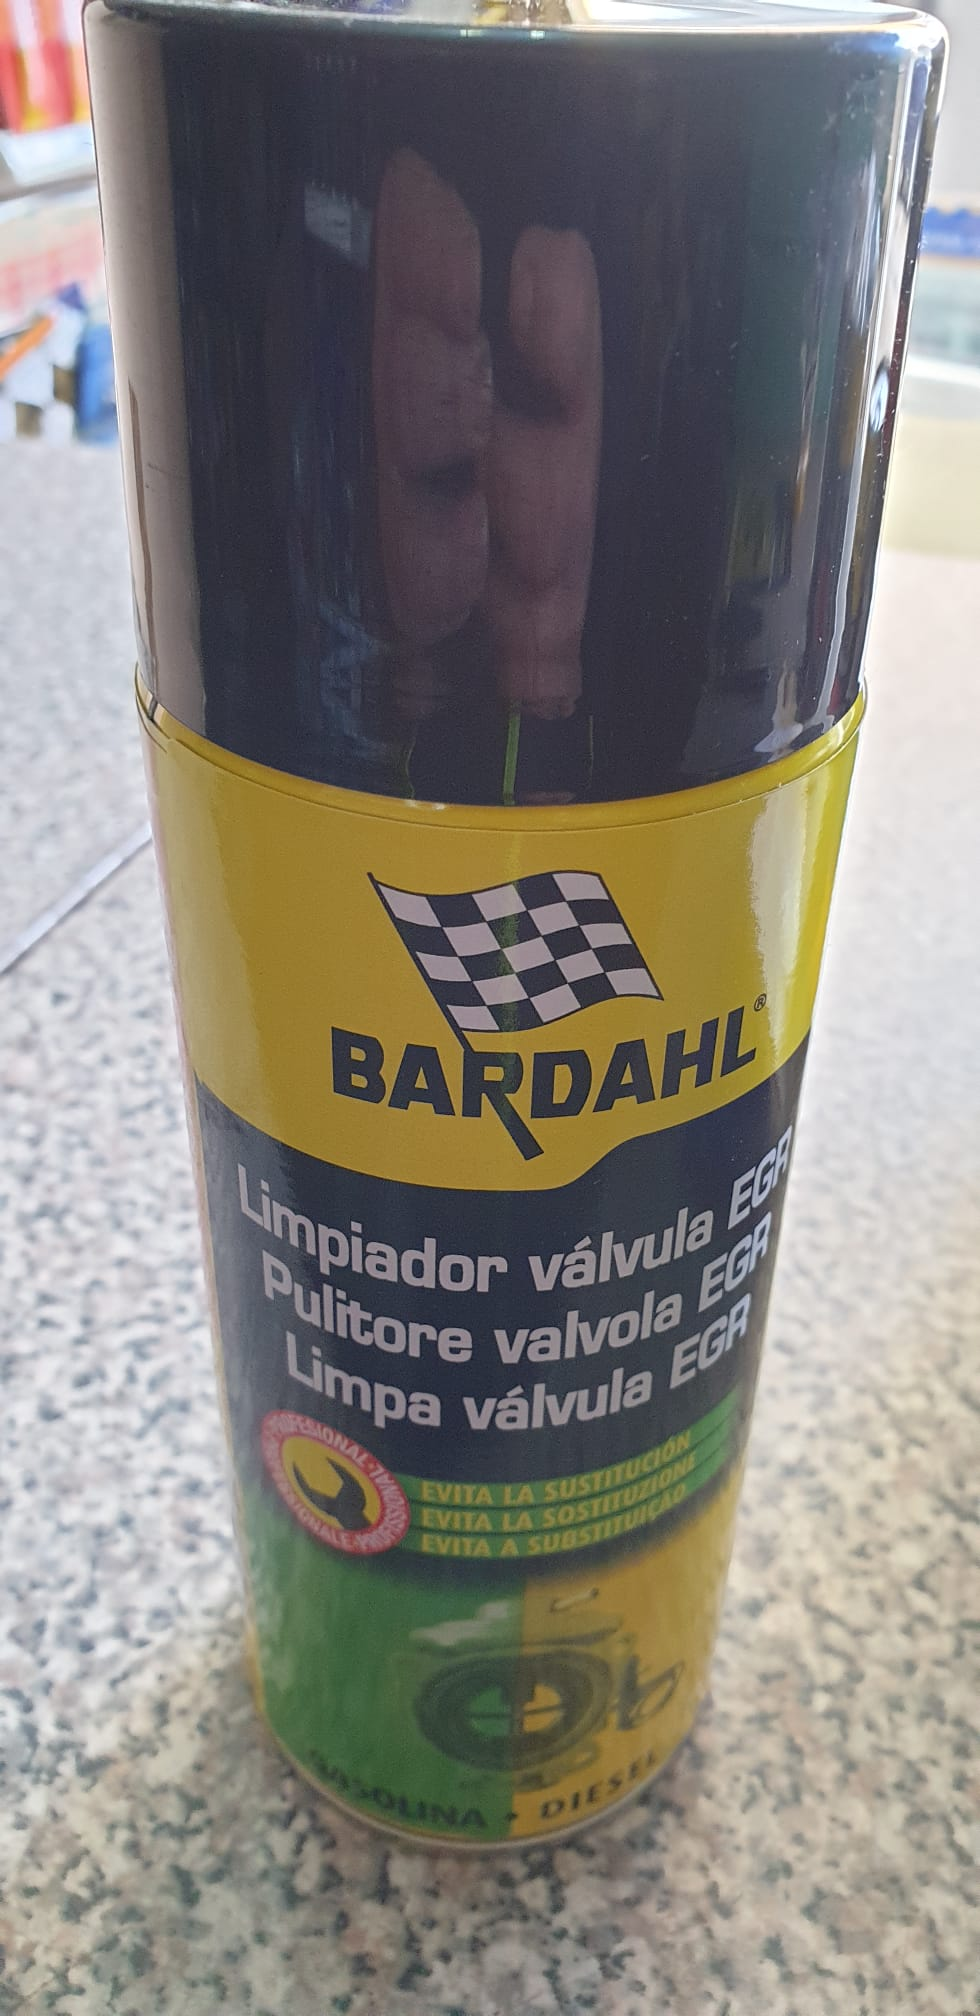 Additivo Pulitore valv. EGR spray 400ml BARDAHL